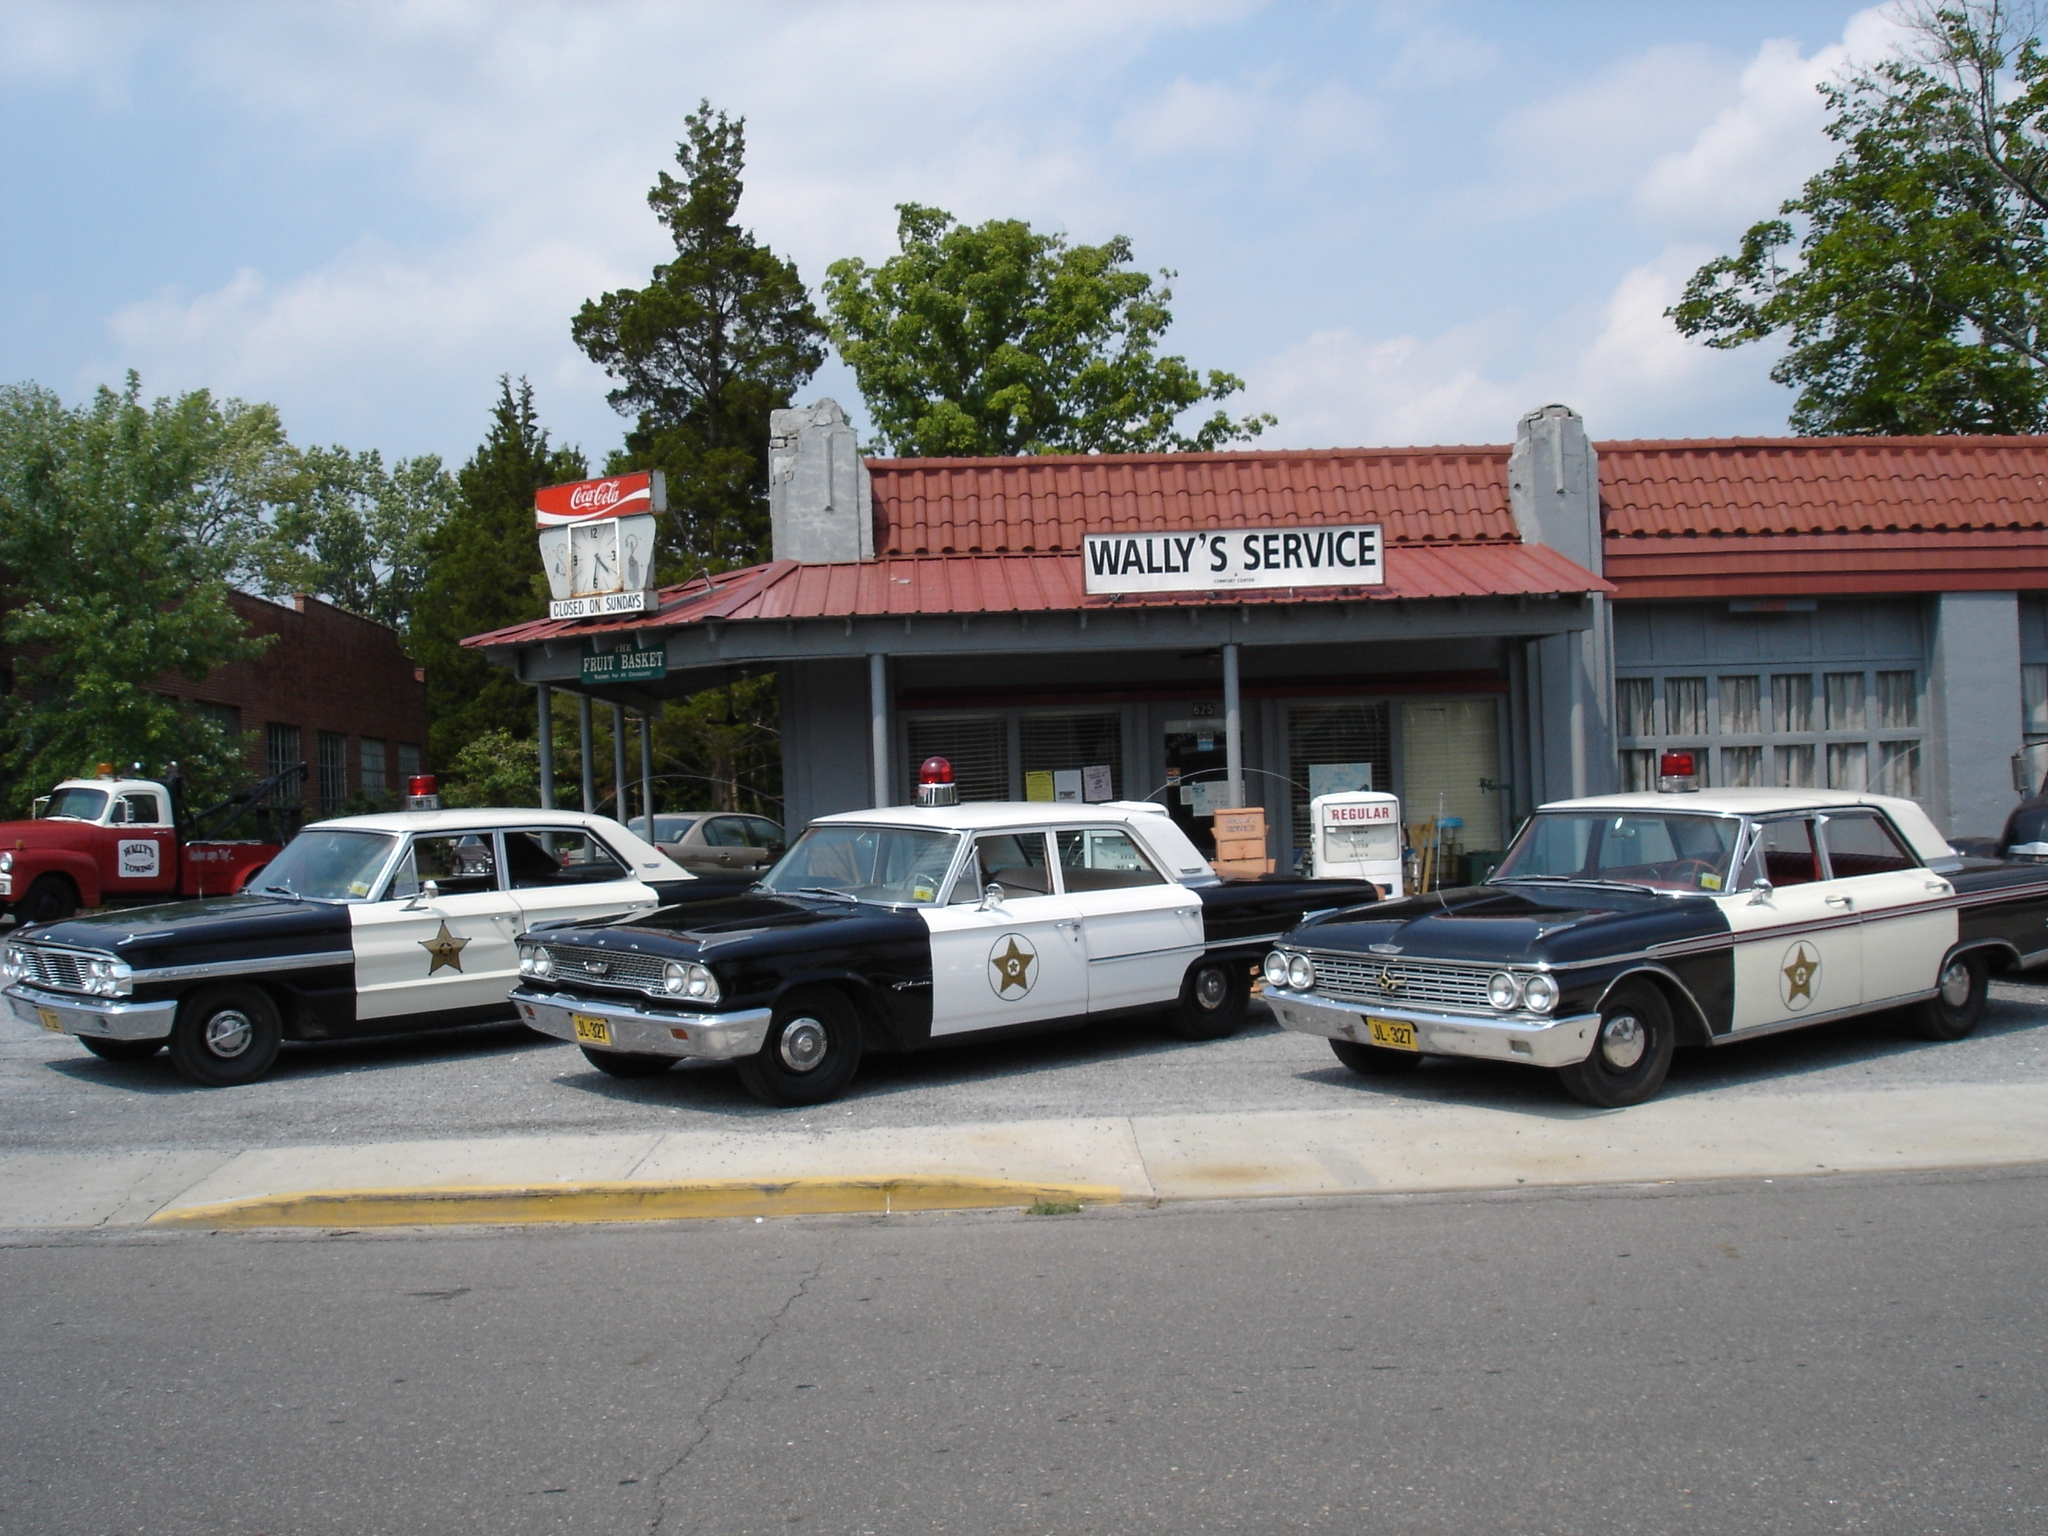 mount airy dating site Visit reports, news, maps, directions and info on andy griffith tv town of mayberry in mount airy, north carolina.